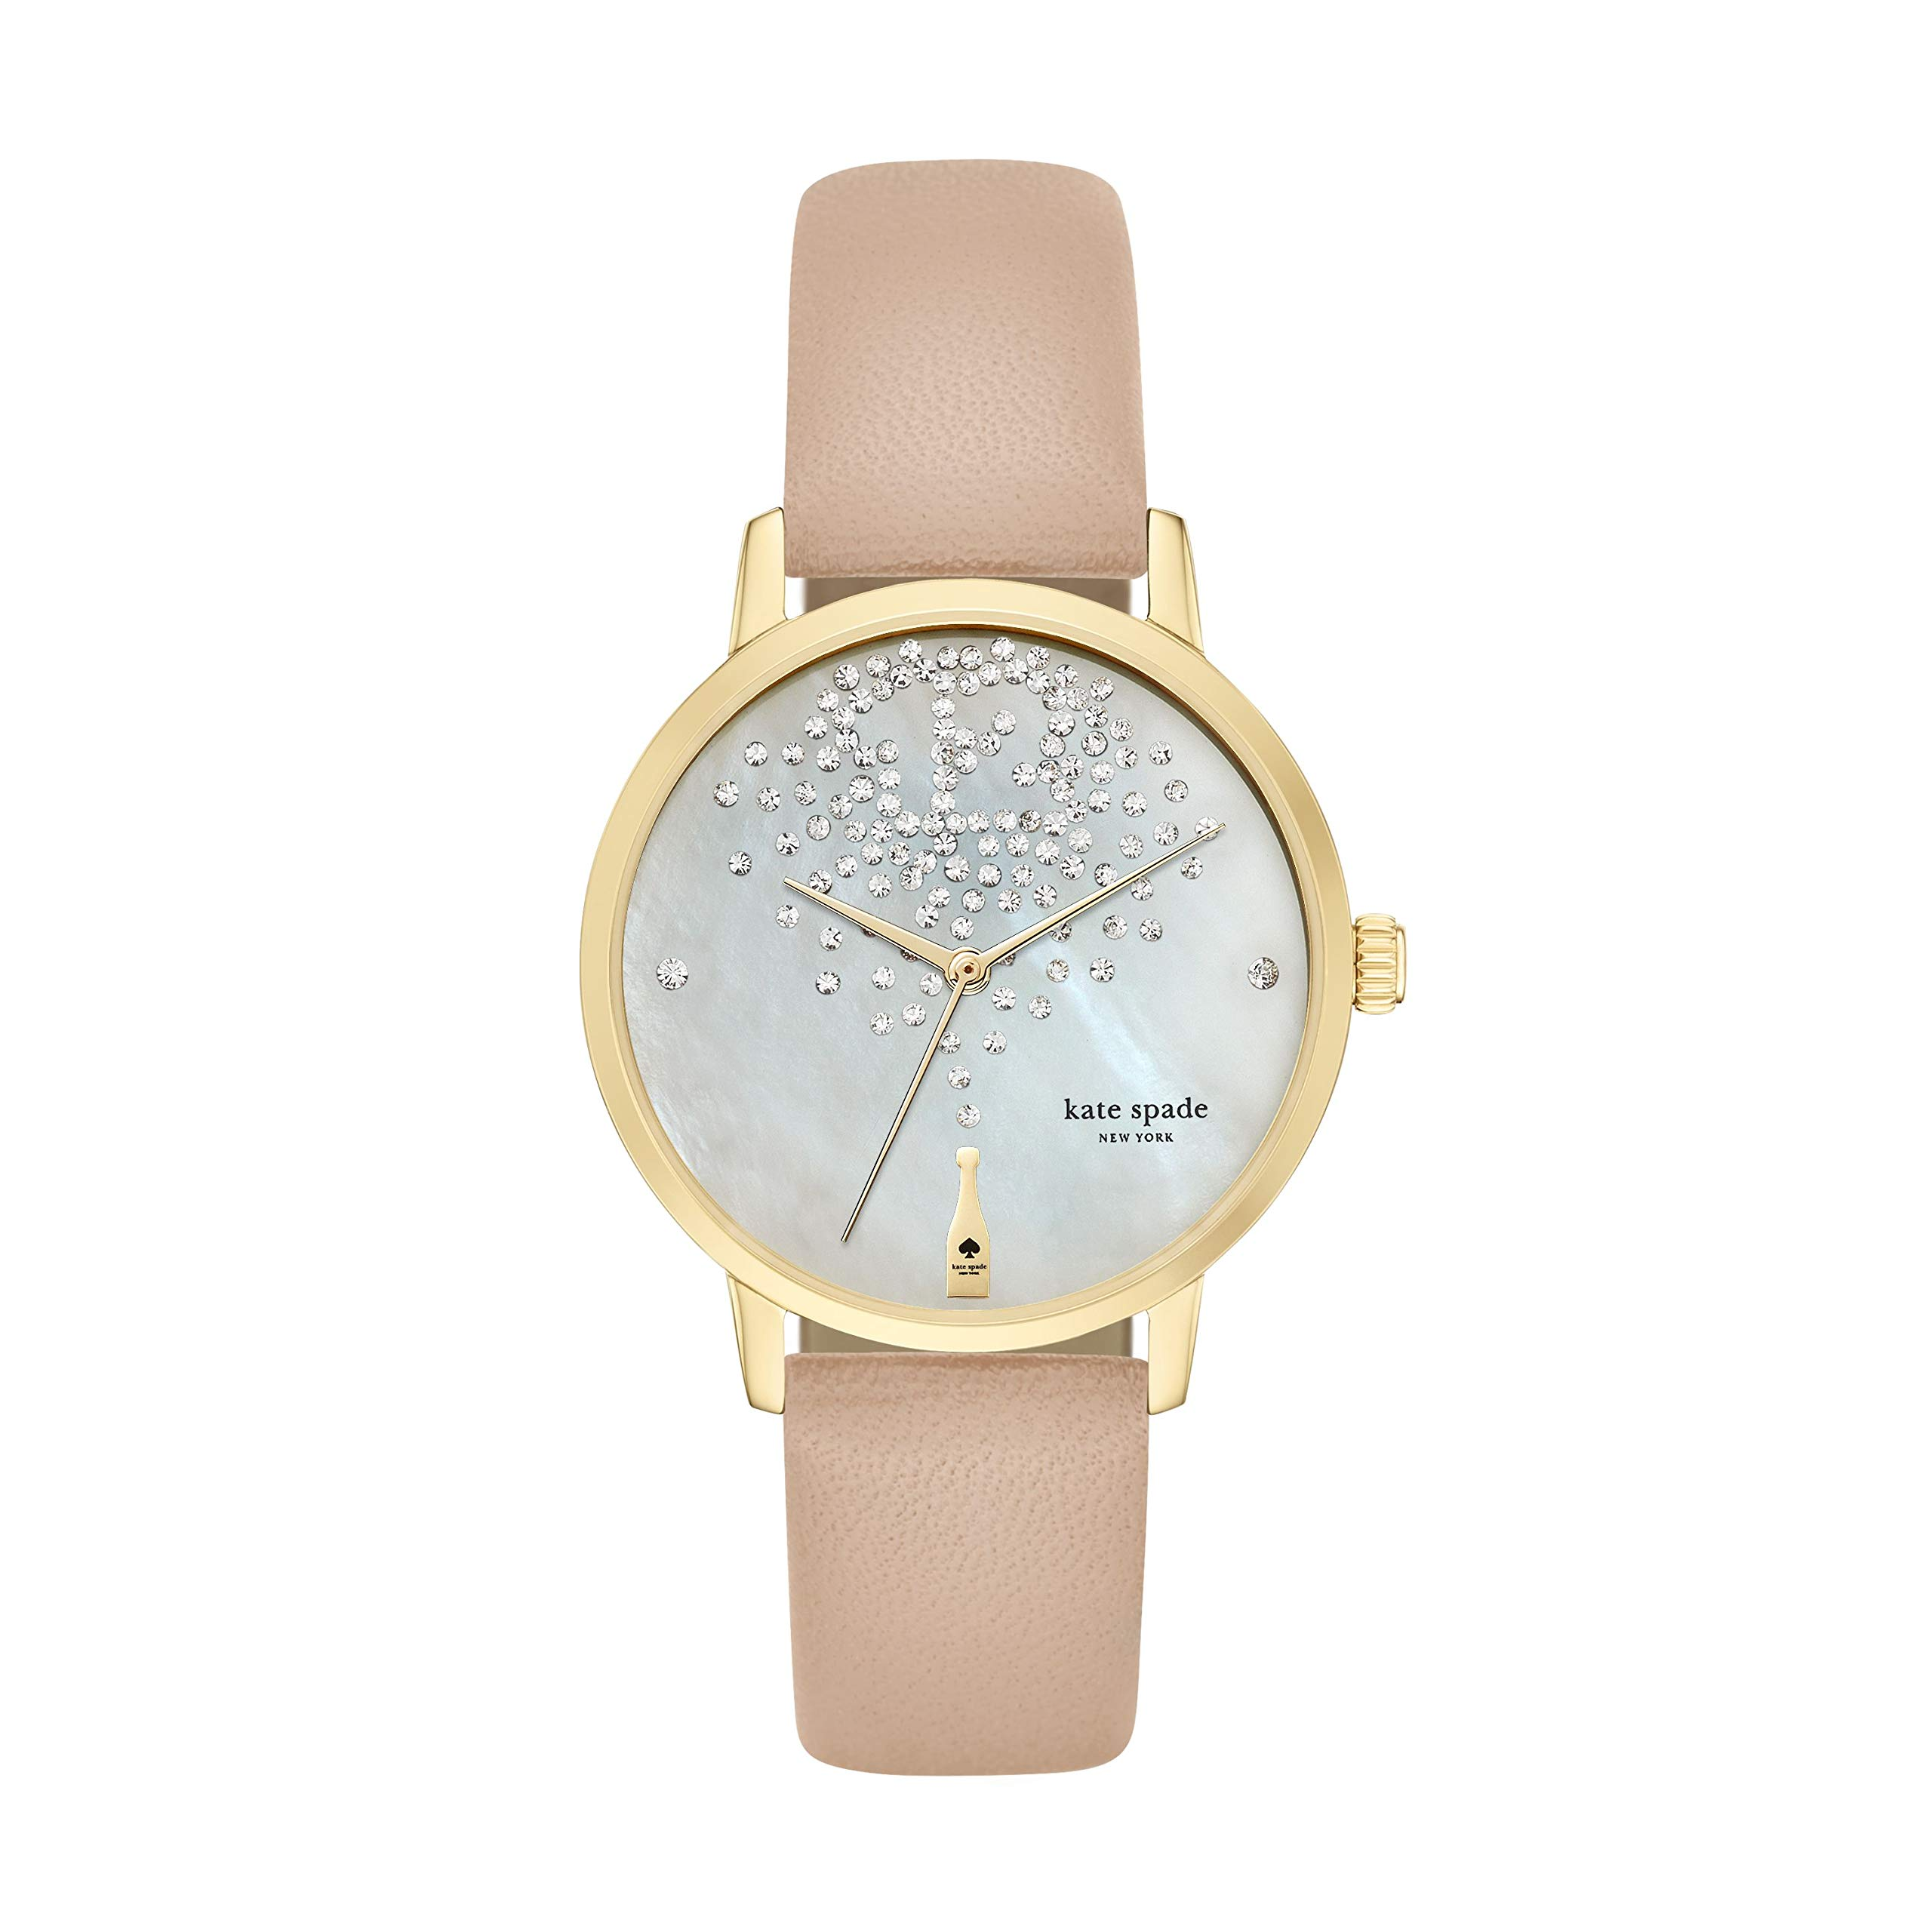 kate spade new york Women's KSW1015 Metro Watch With Beige Leather Band by Kate Spade New York